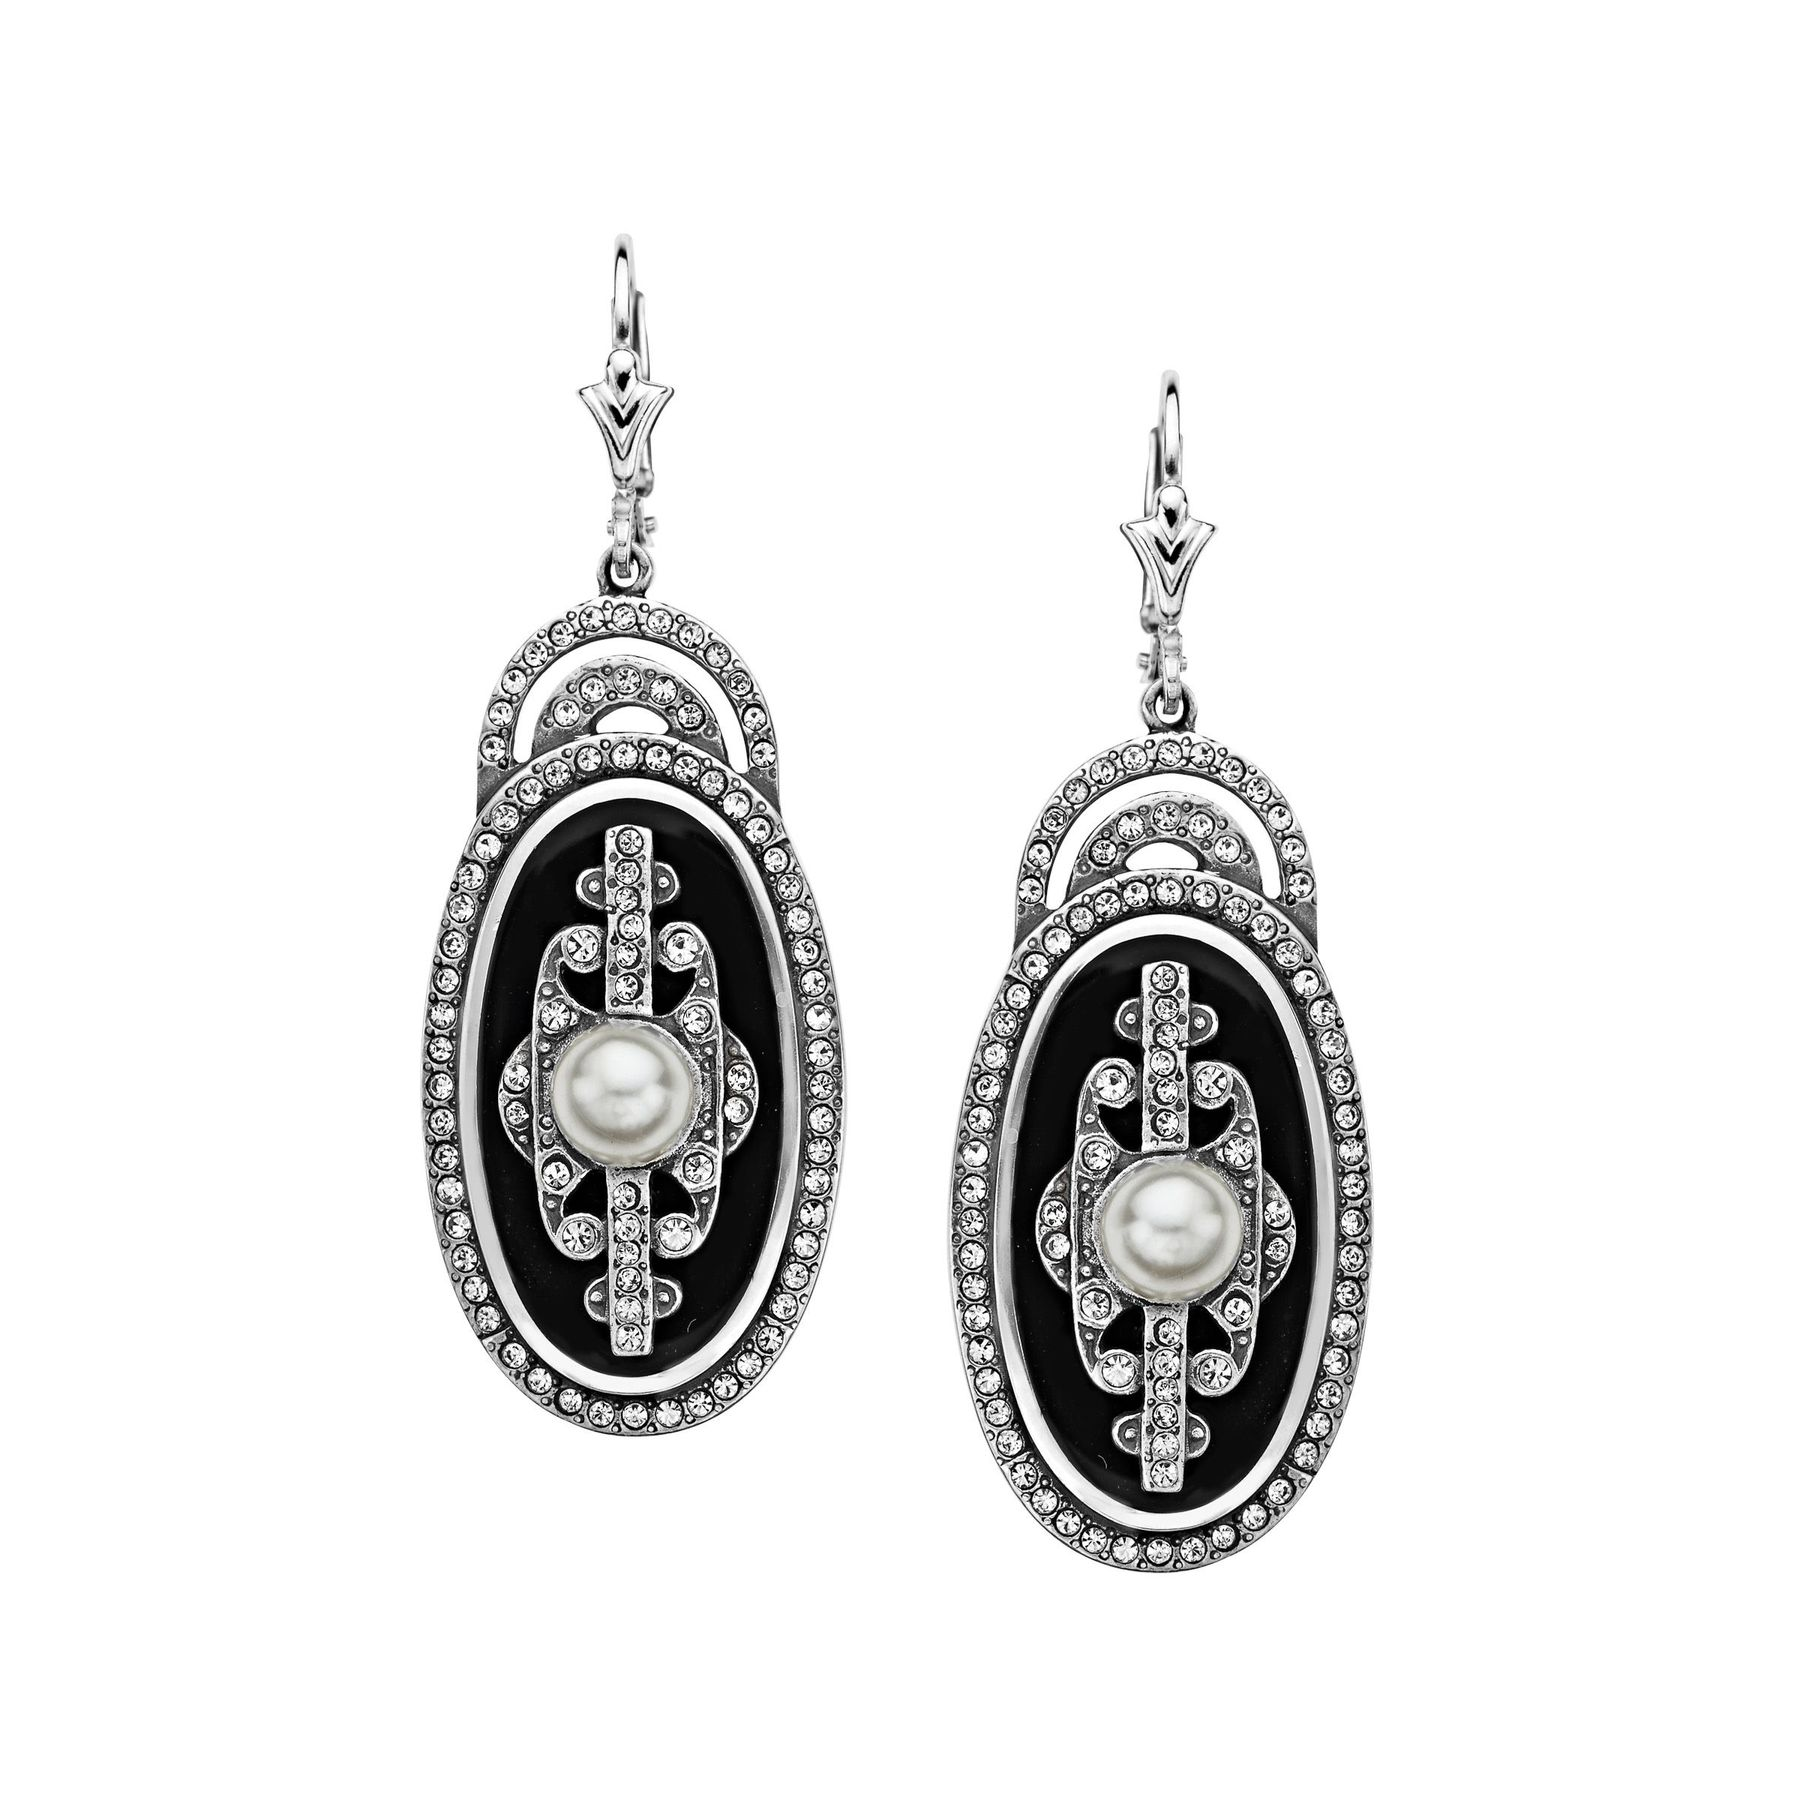 silver earrings with pearls zanfeld black garnet art and deco shop